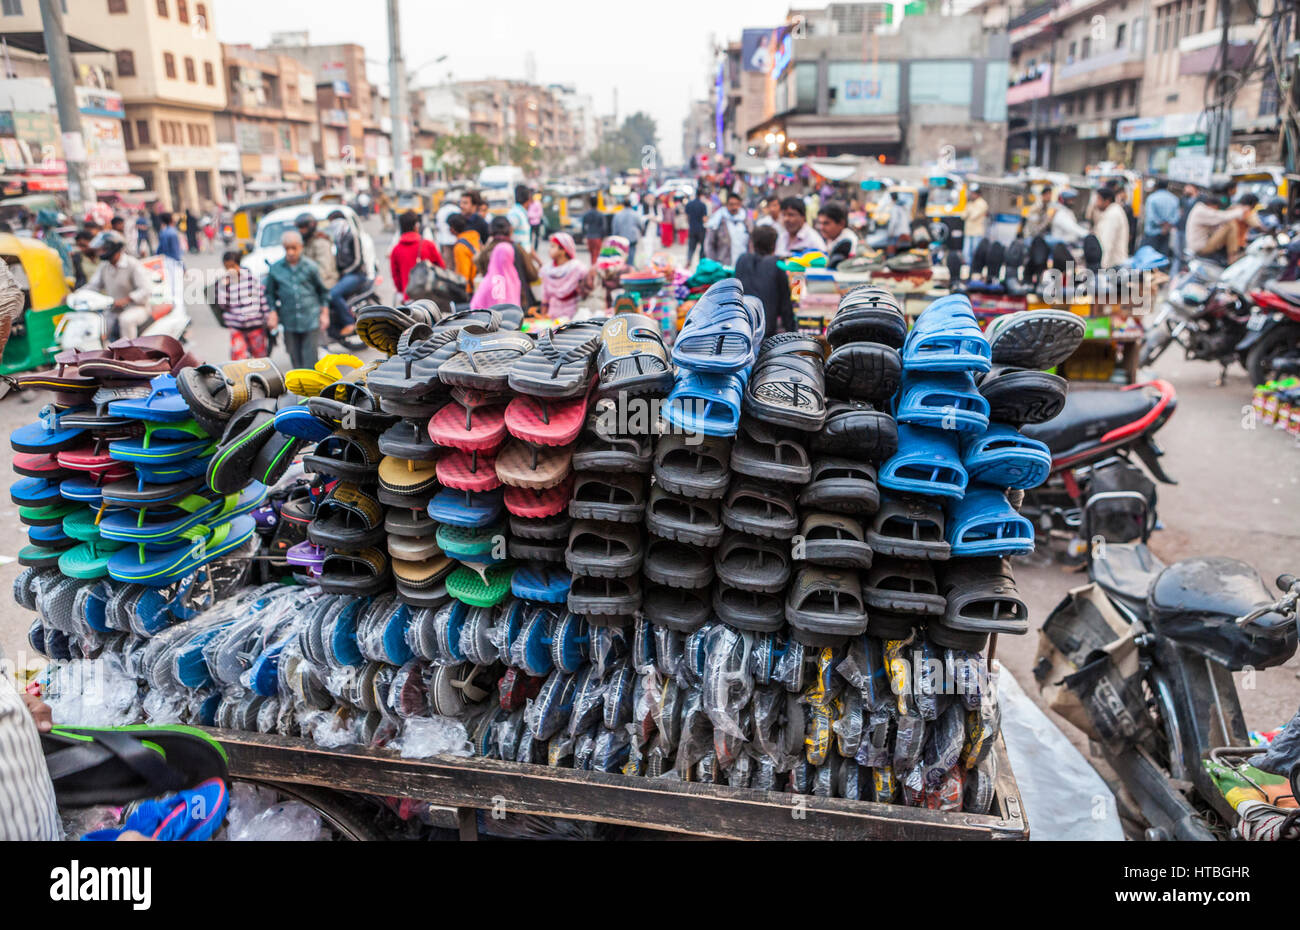 A cart full of sandals and flip flops in Sardar Market, Jodhpur, Rajasthan, India. - Stock Image